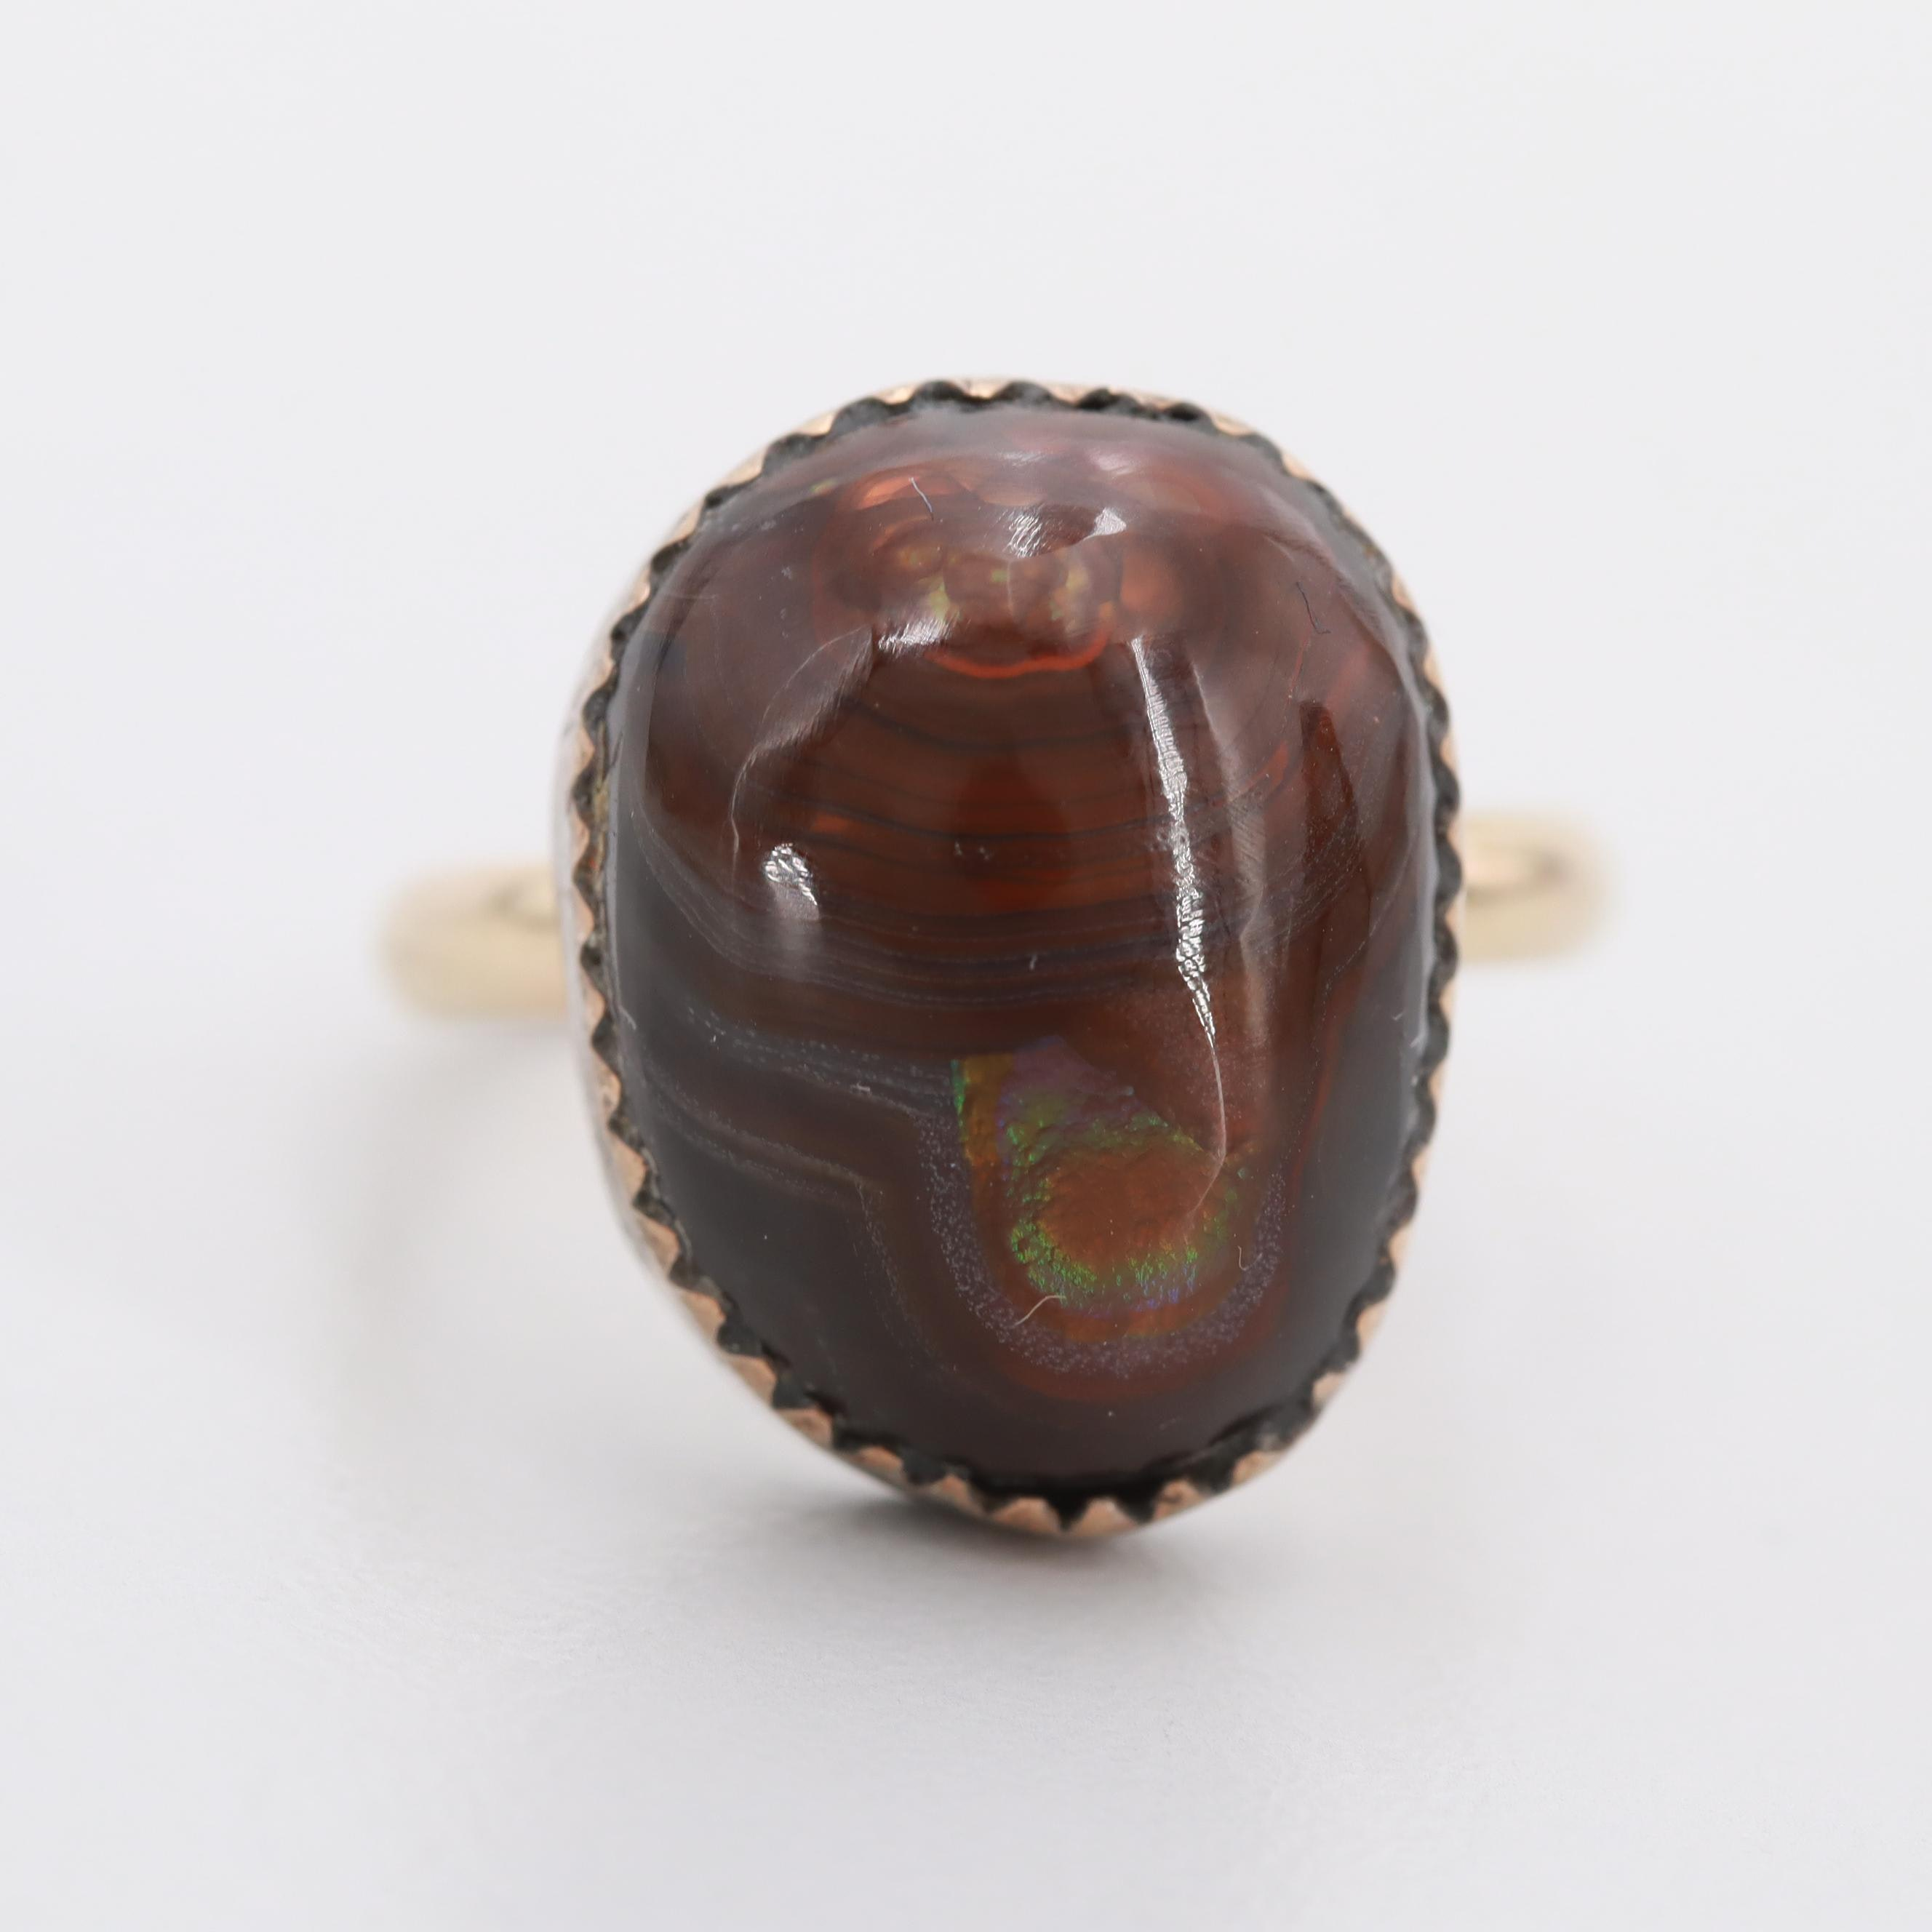 10K Yellow Gold Fire Agate Ring with Silver Tone Bezel